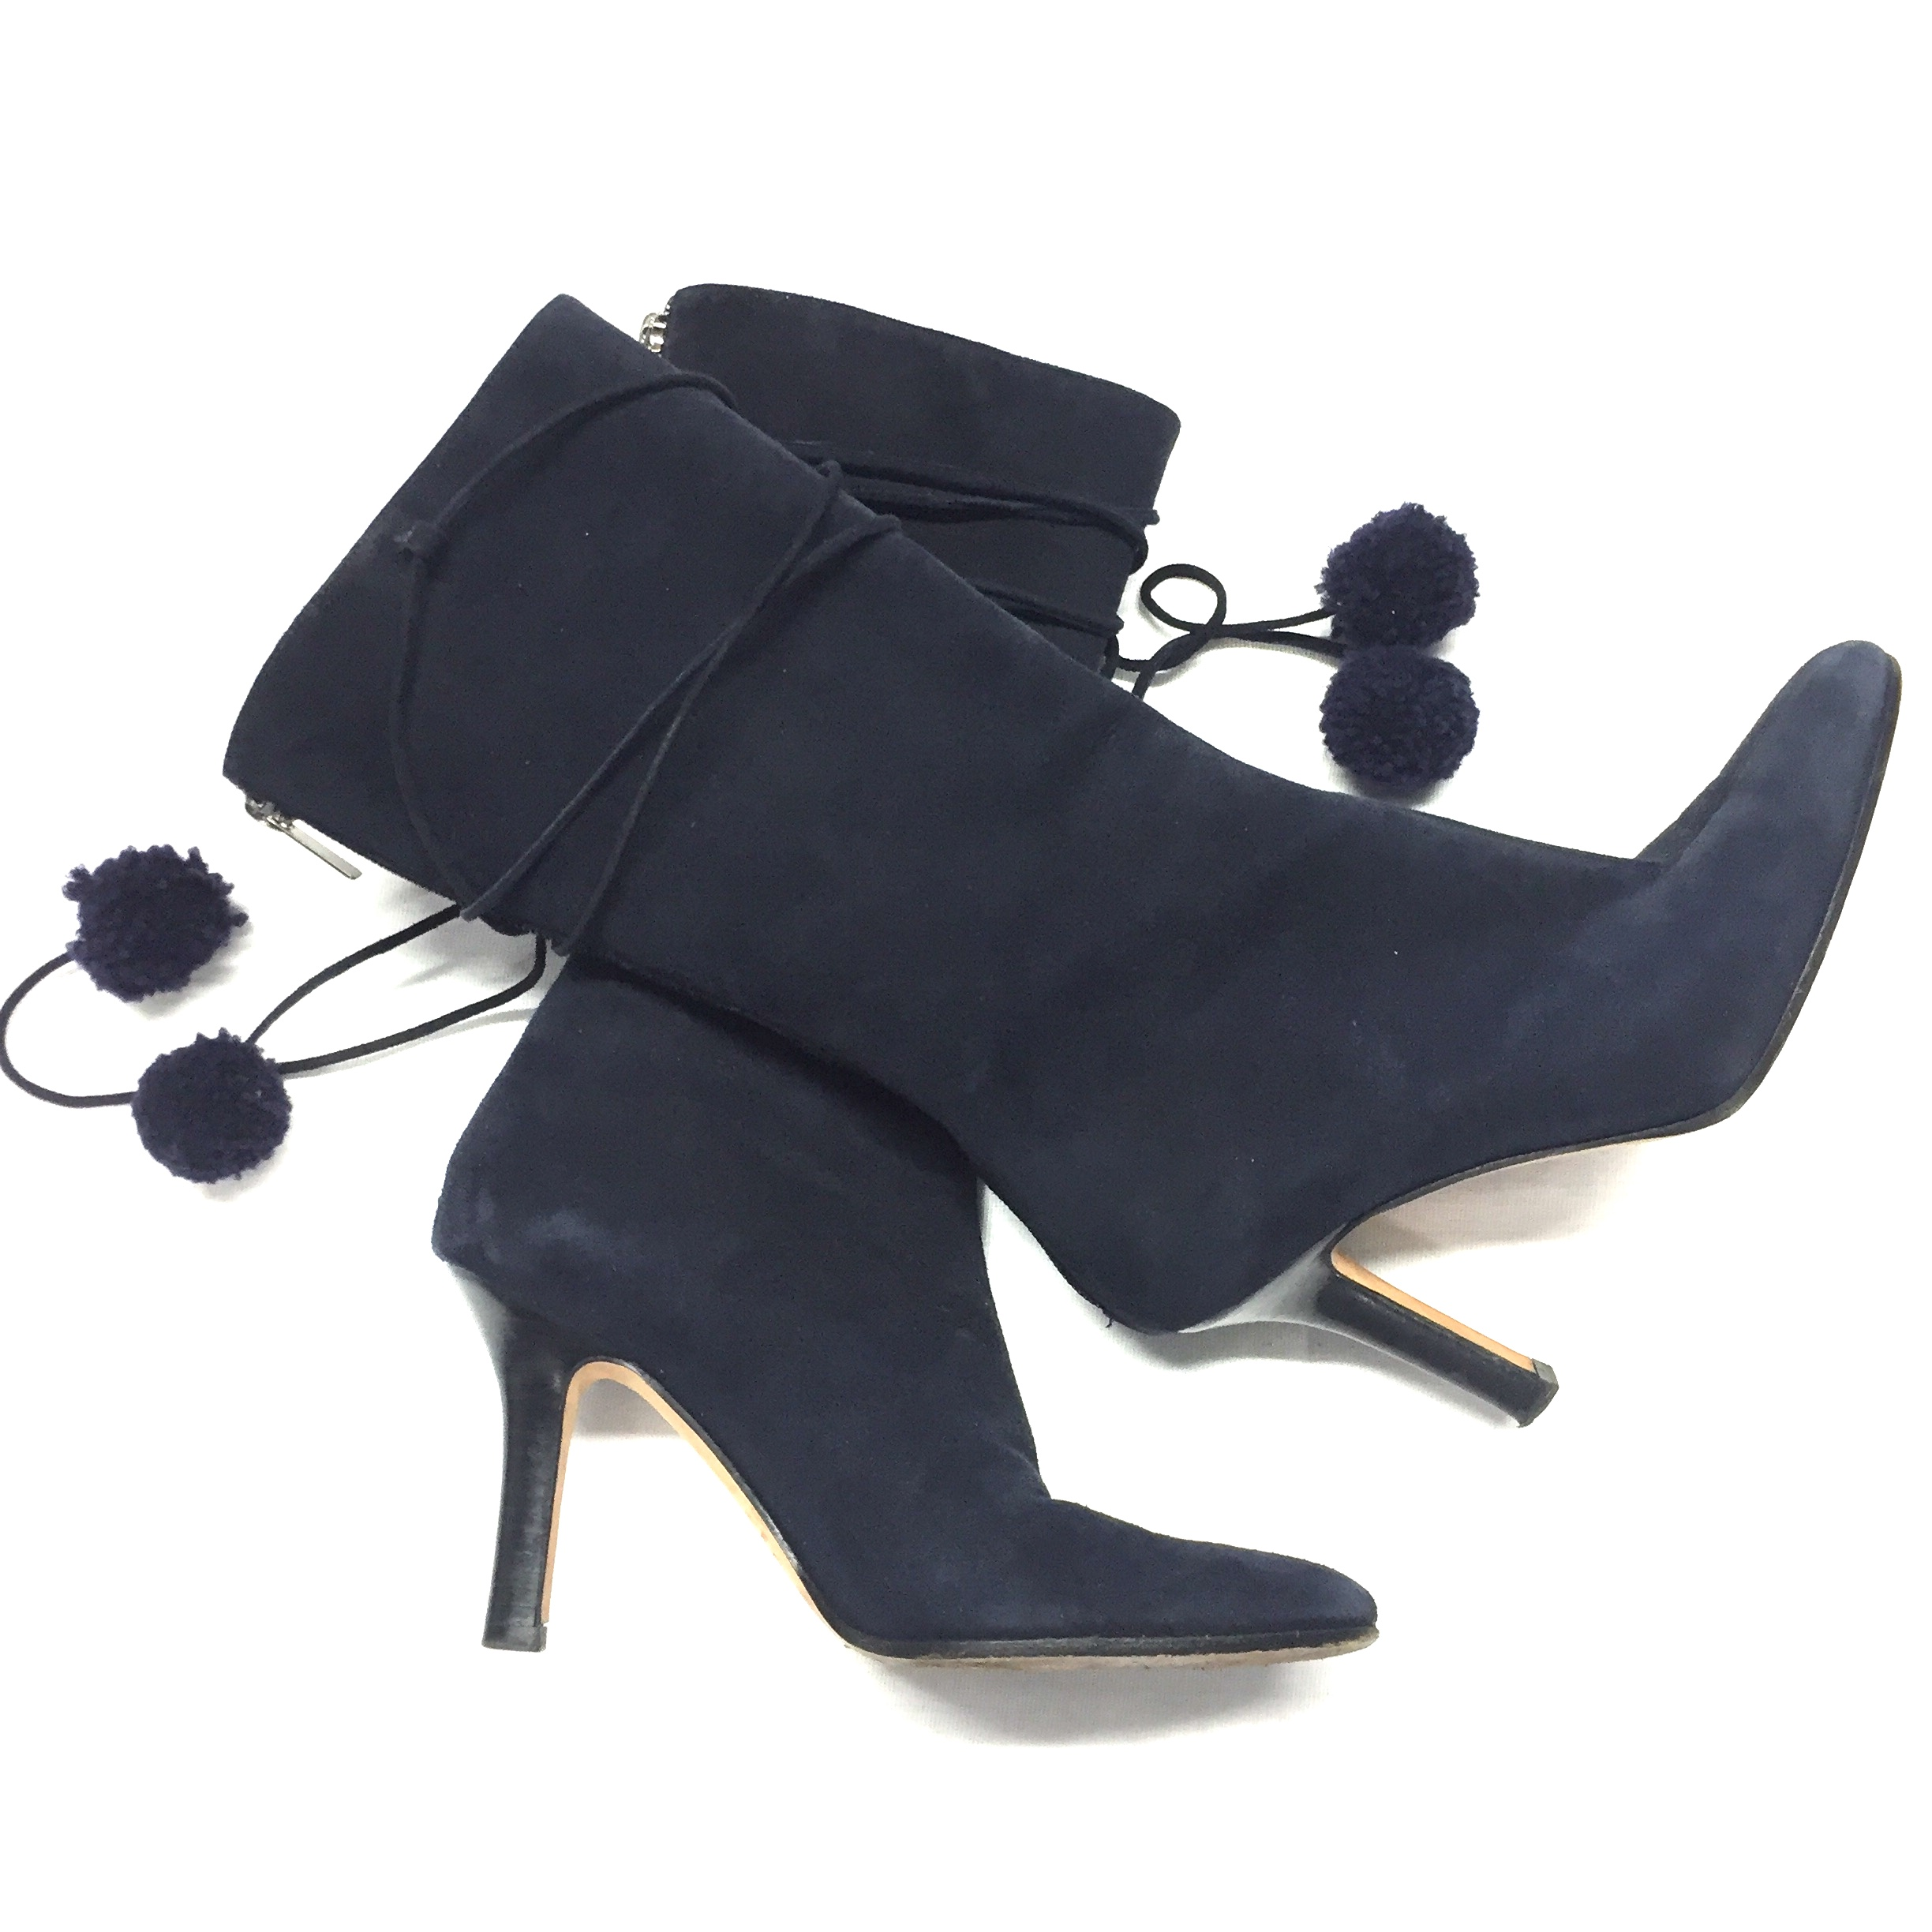 dbb26d2dfa9 Jimmy Choo navy suede boot size 36 - Closet Couture